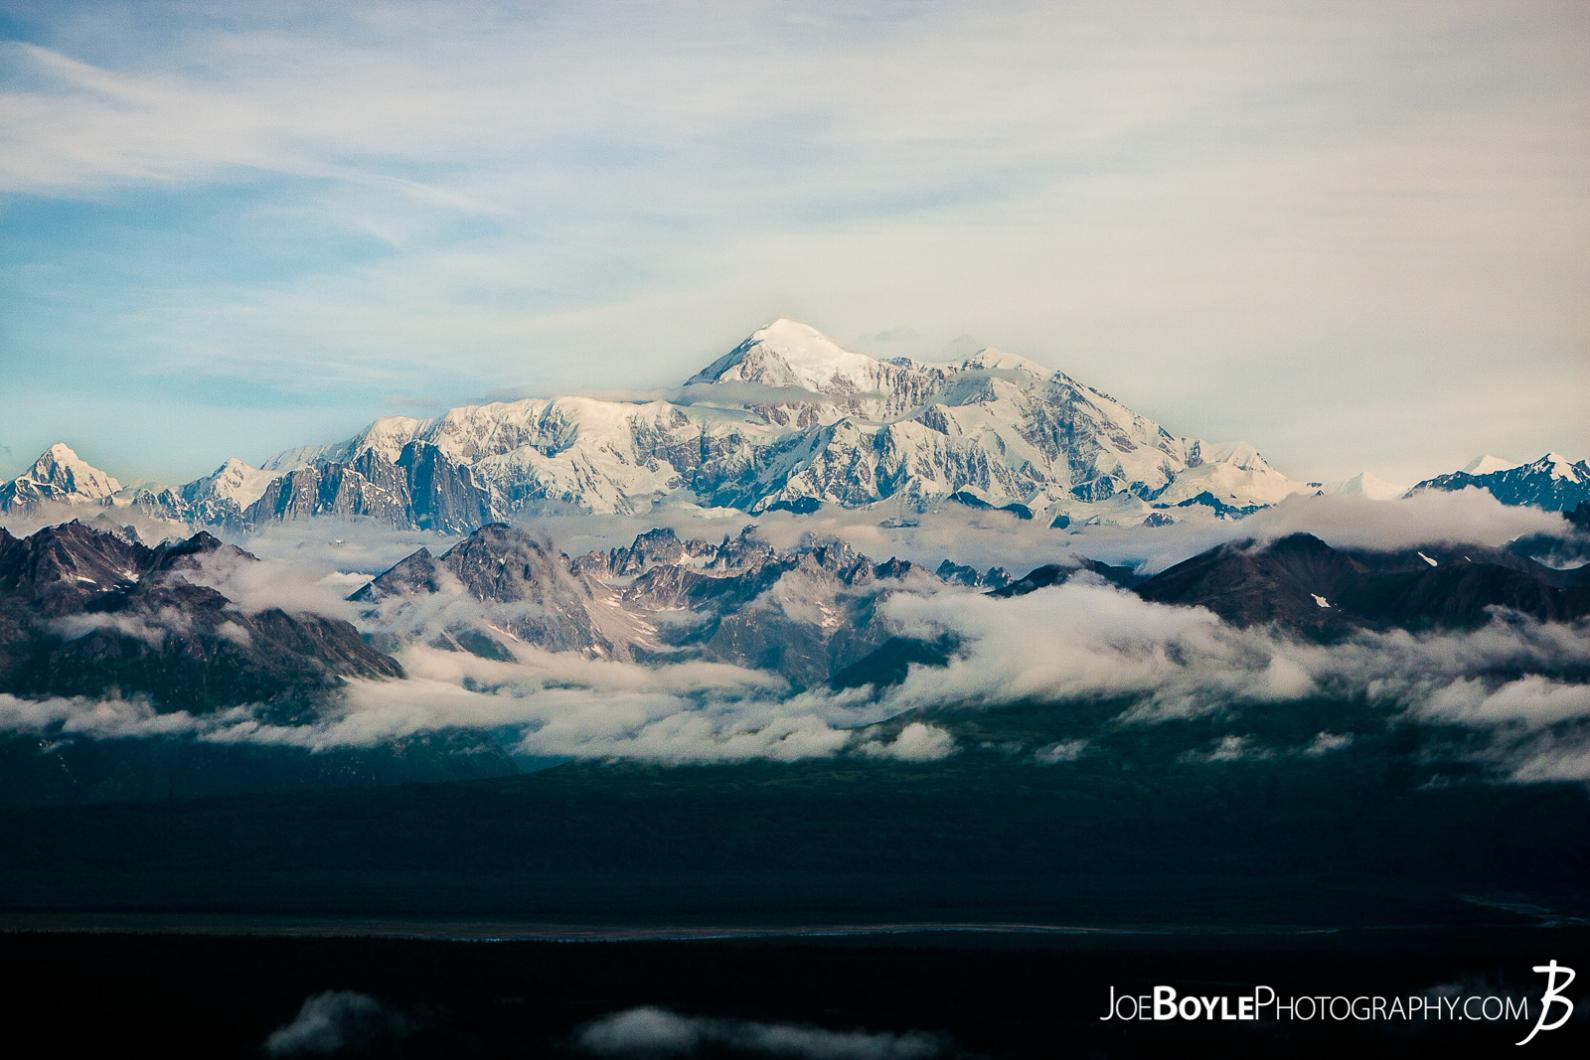 mount-denali-mckinley-from-kesugi-ridge-trail-close-up-ii